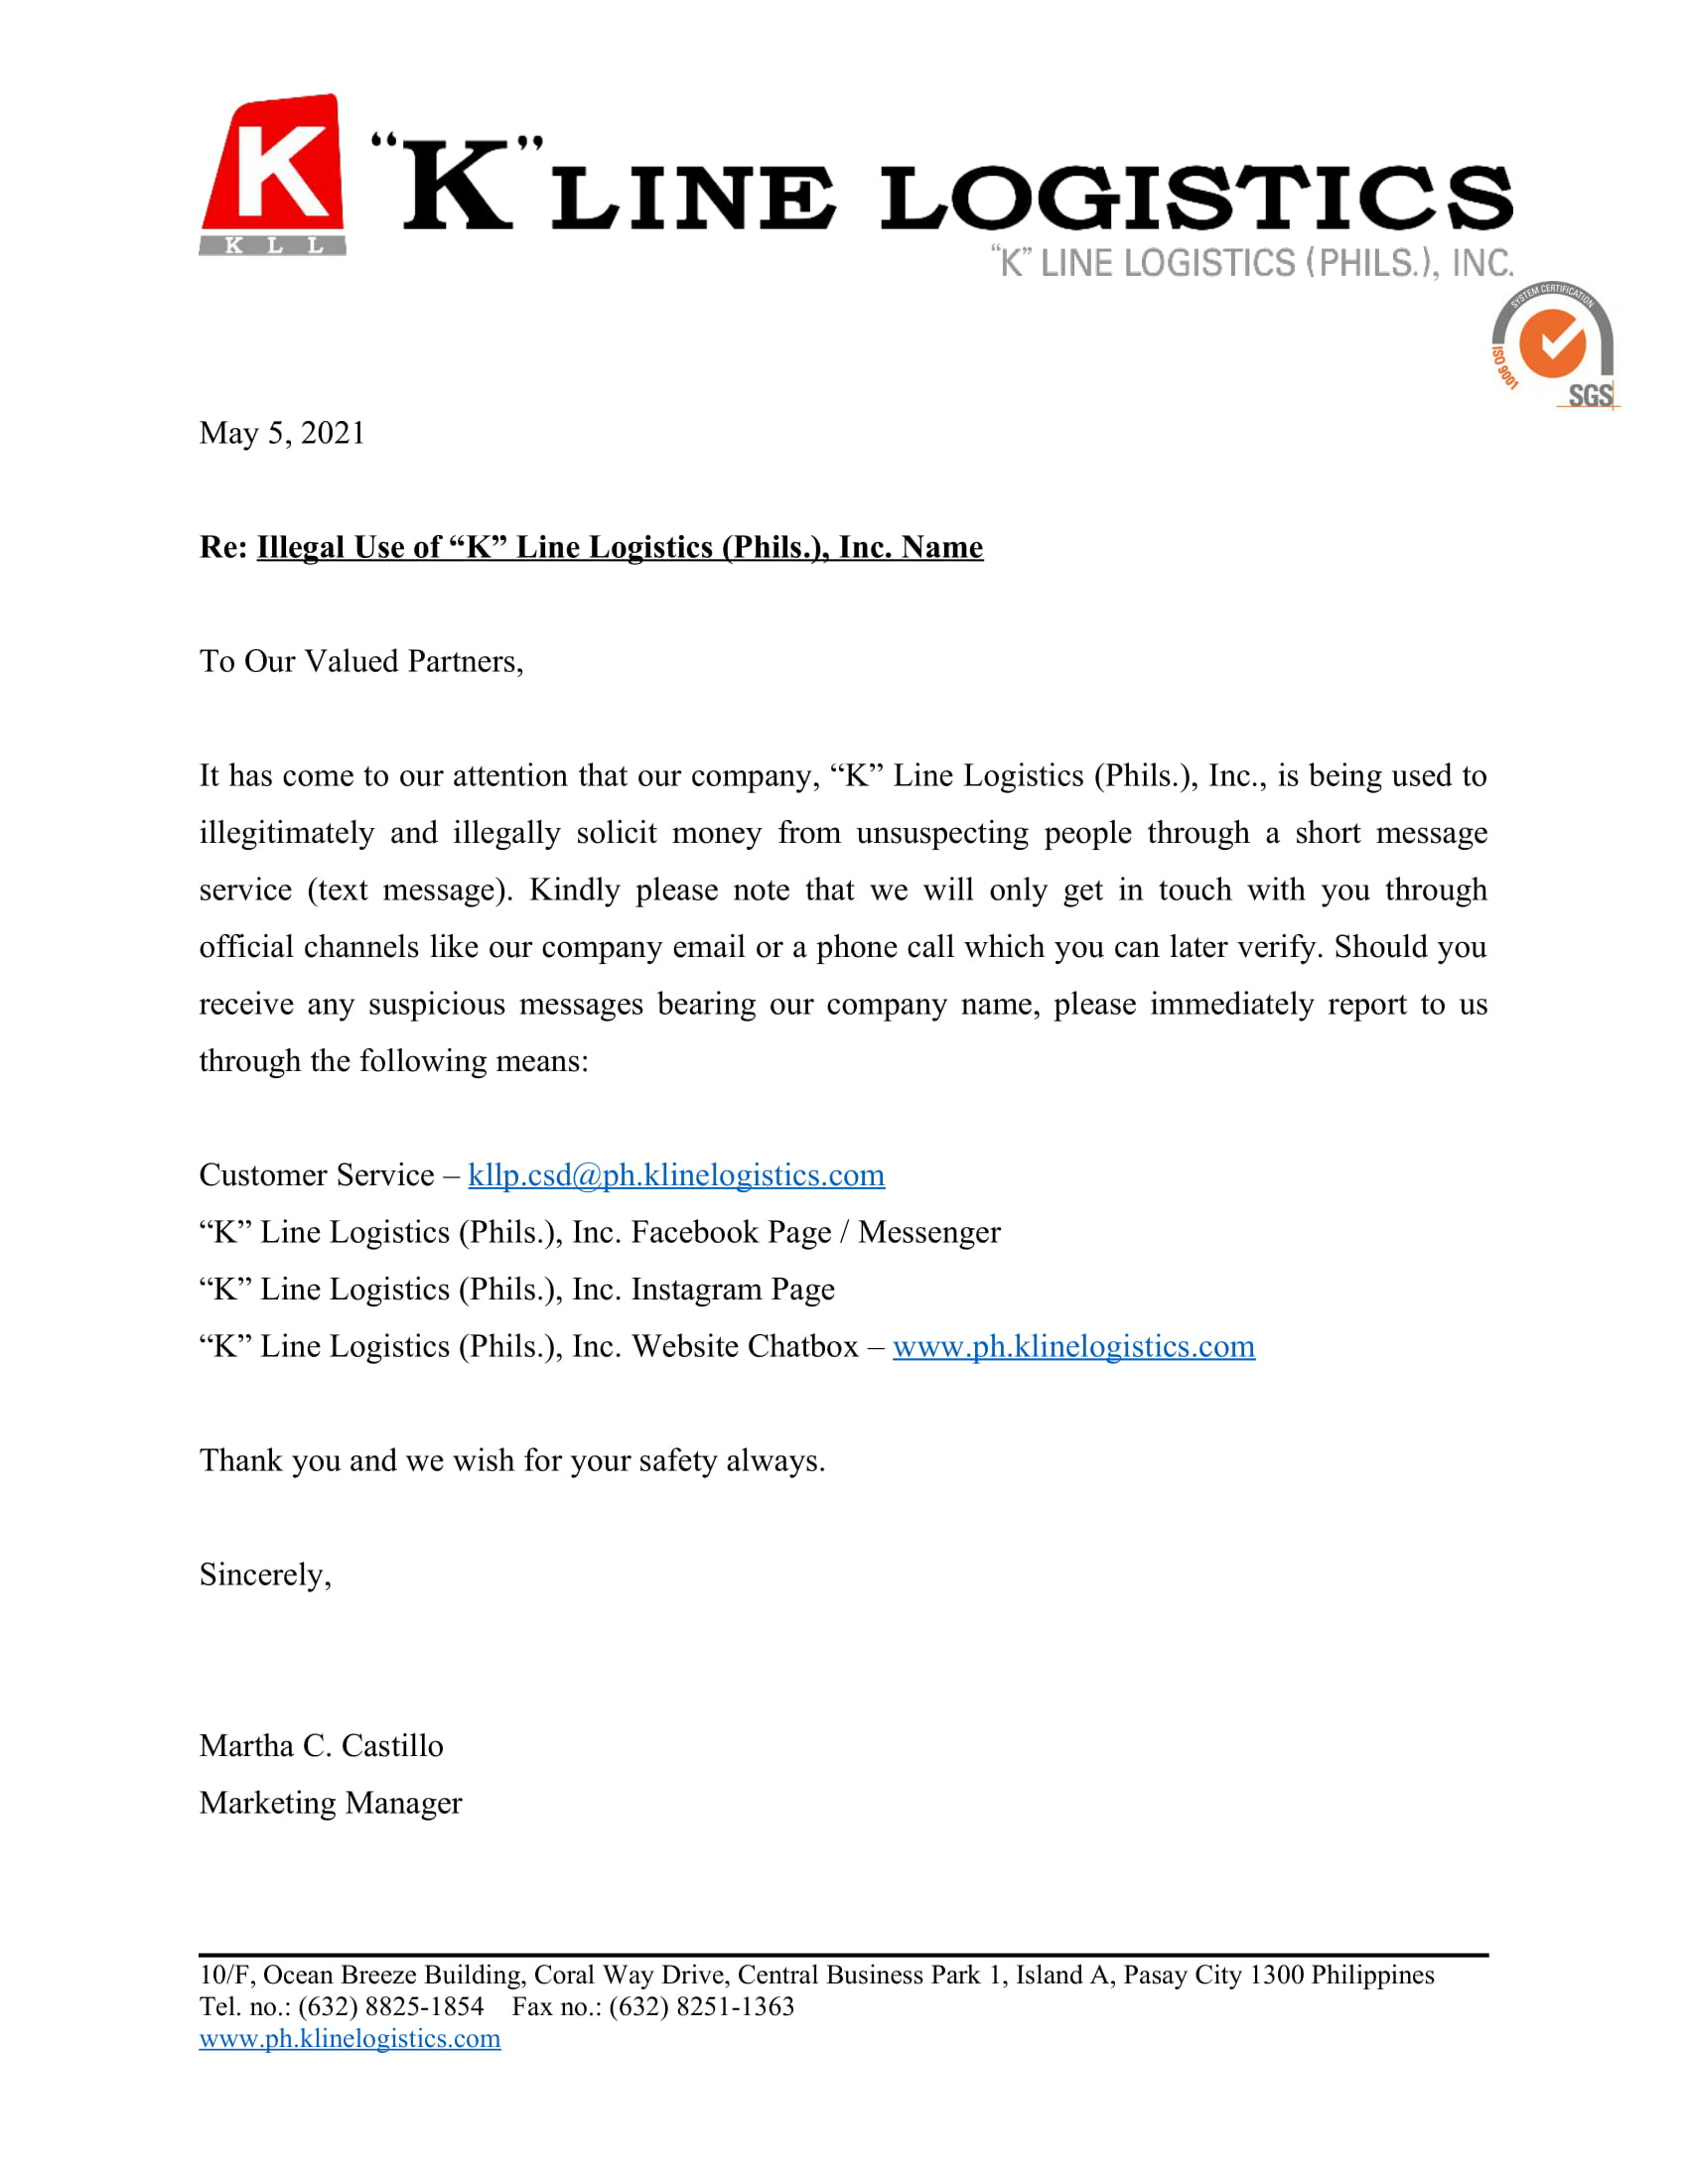 Announcement - Illegal Use of KLLP's Name.jpg